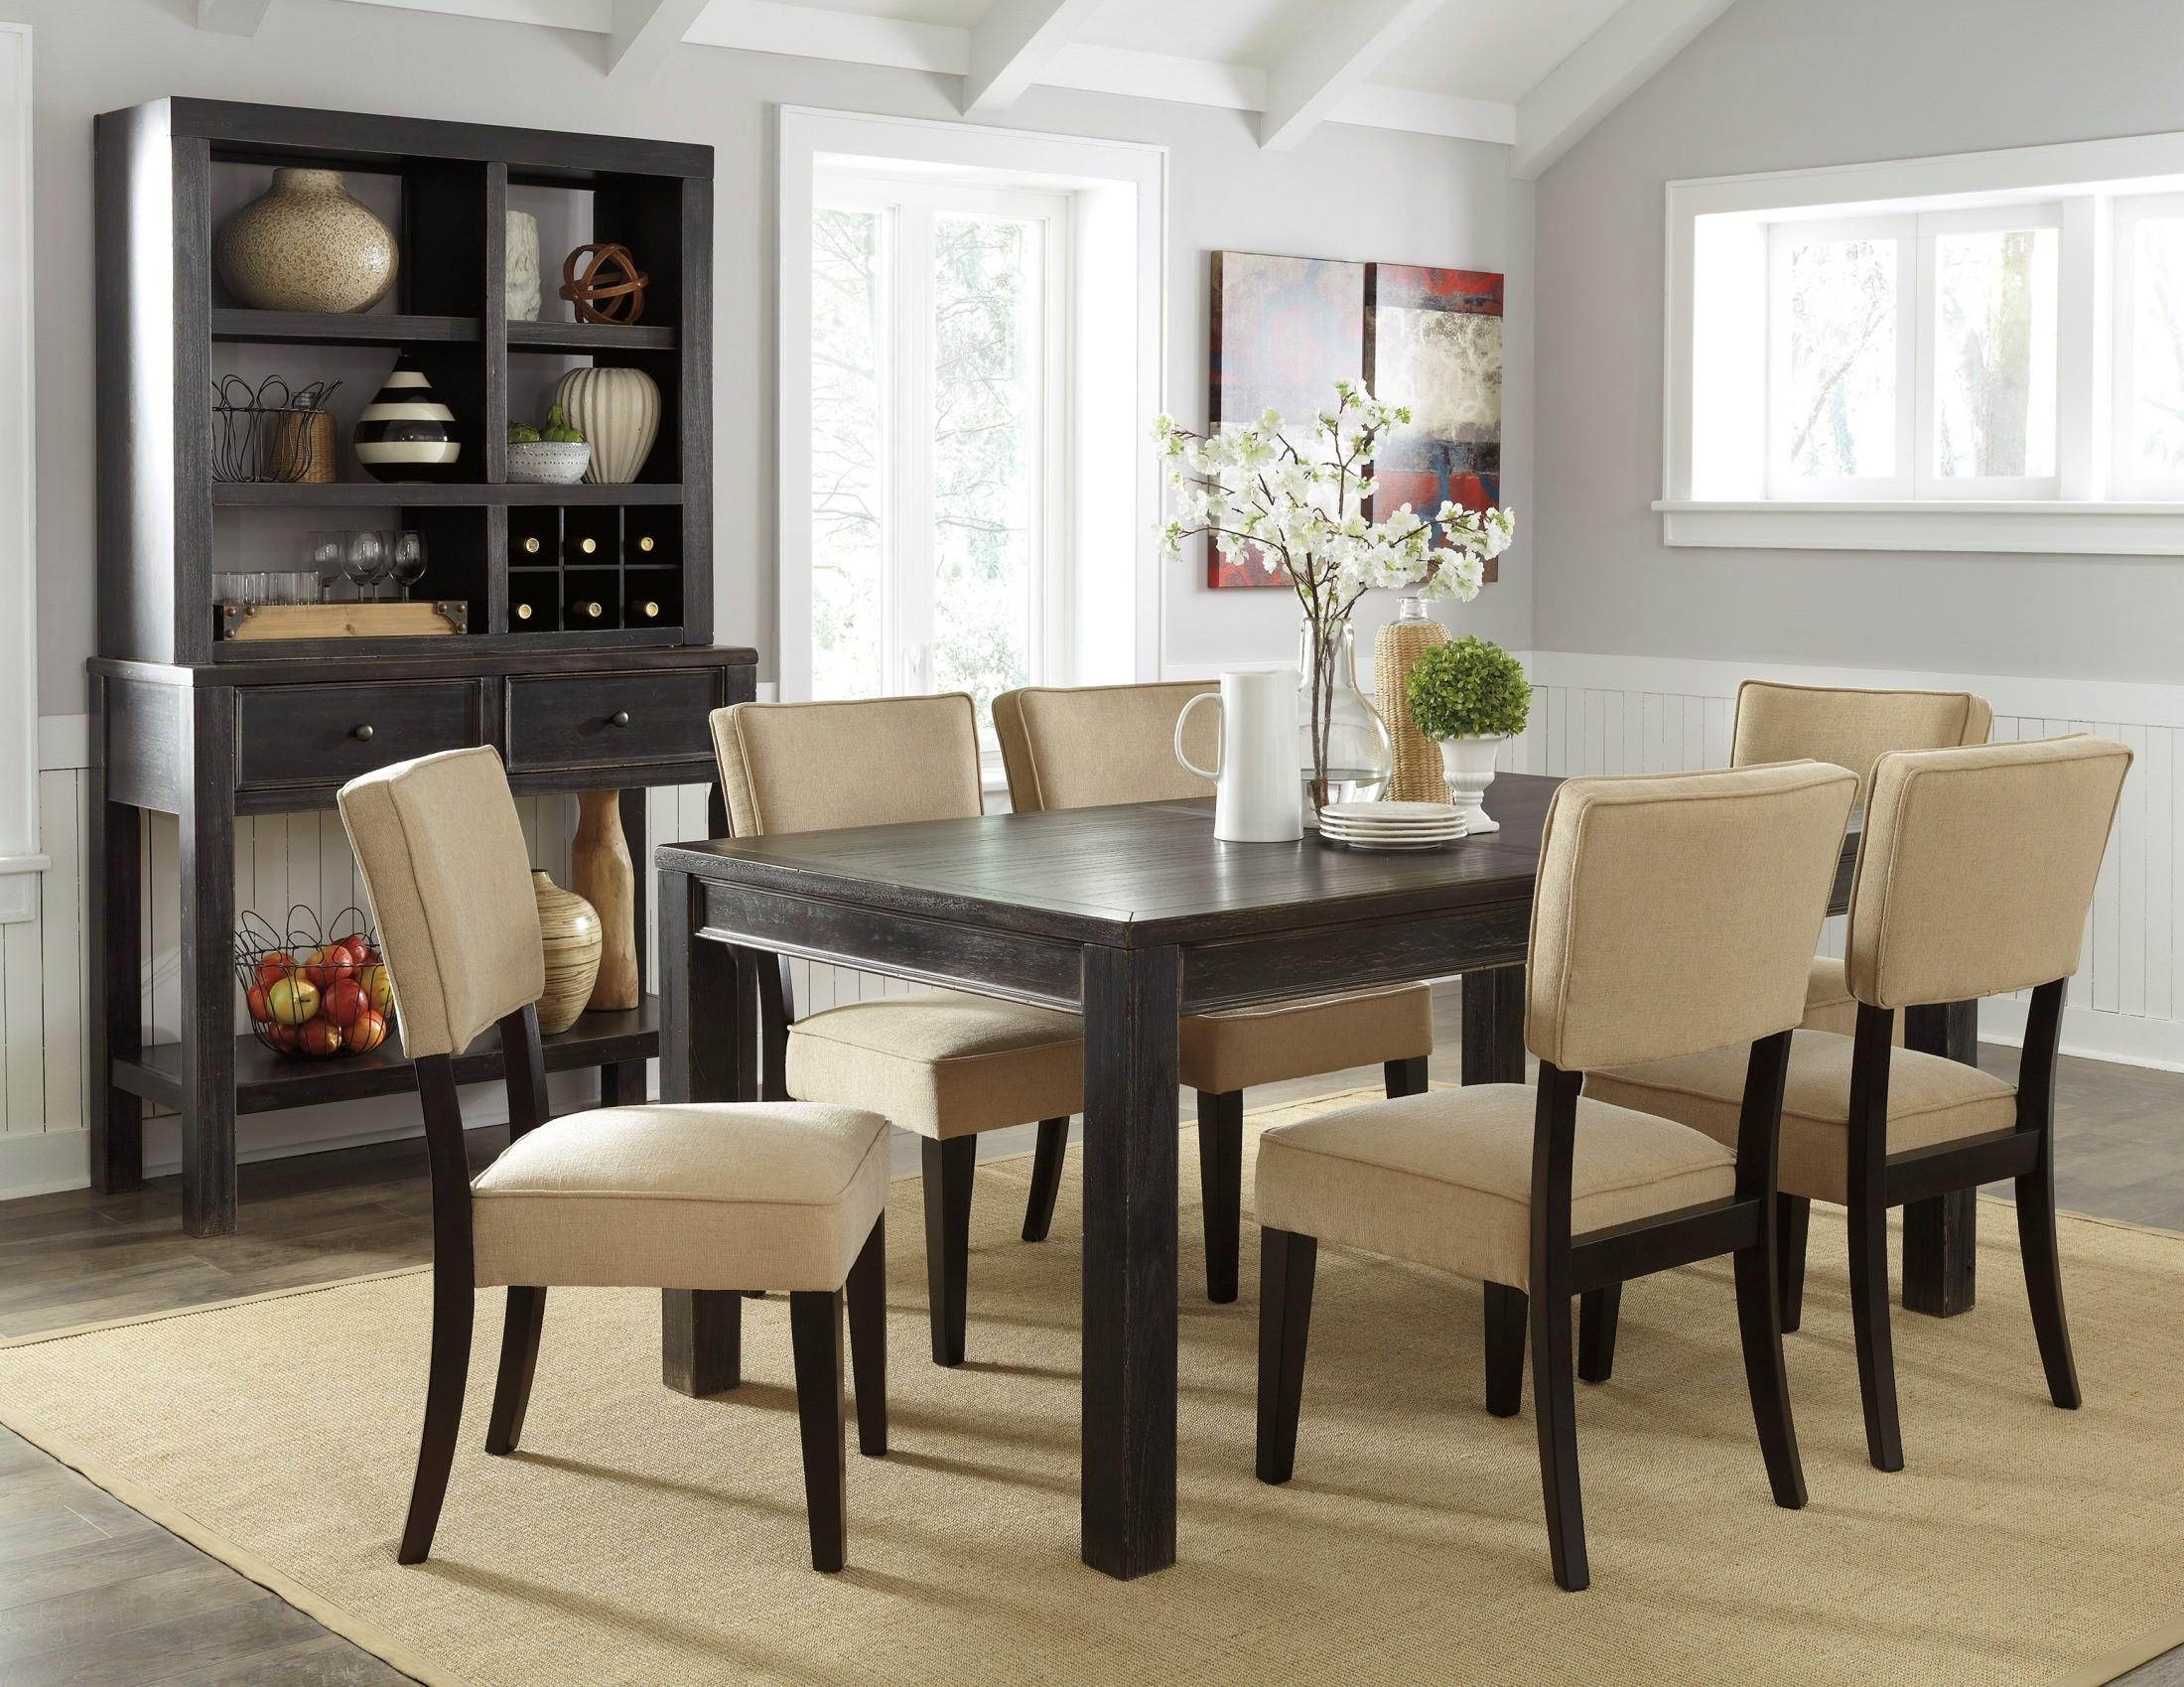 gavelston dining room server from ashley d532 60 coleman furniture